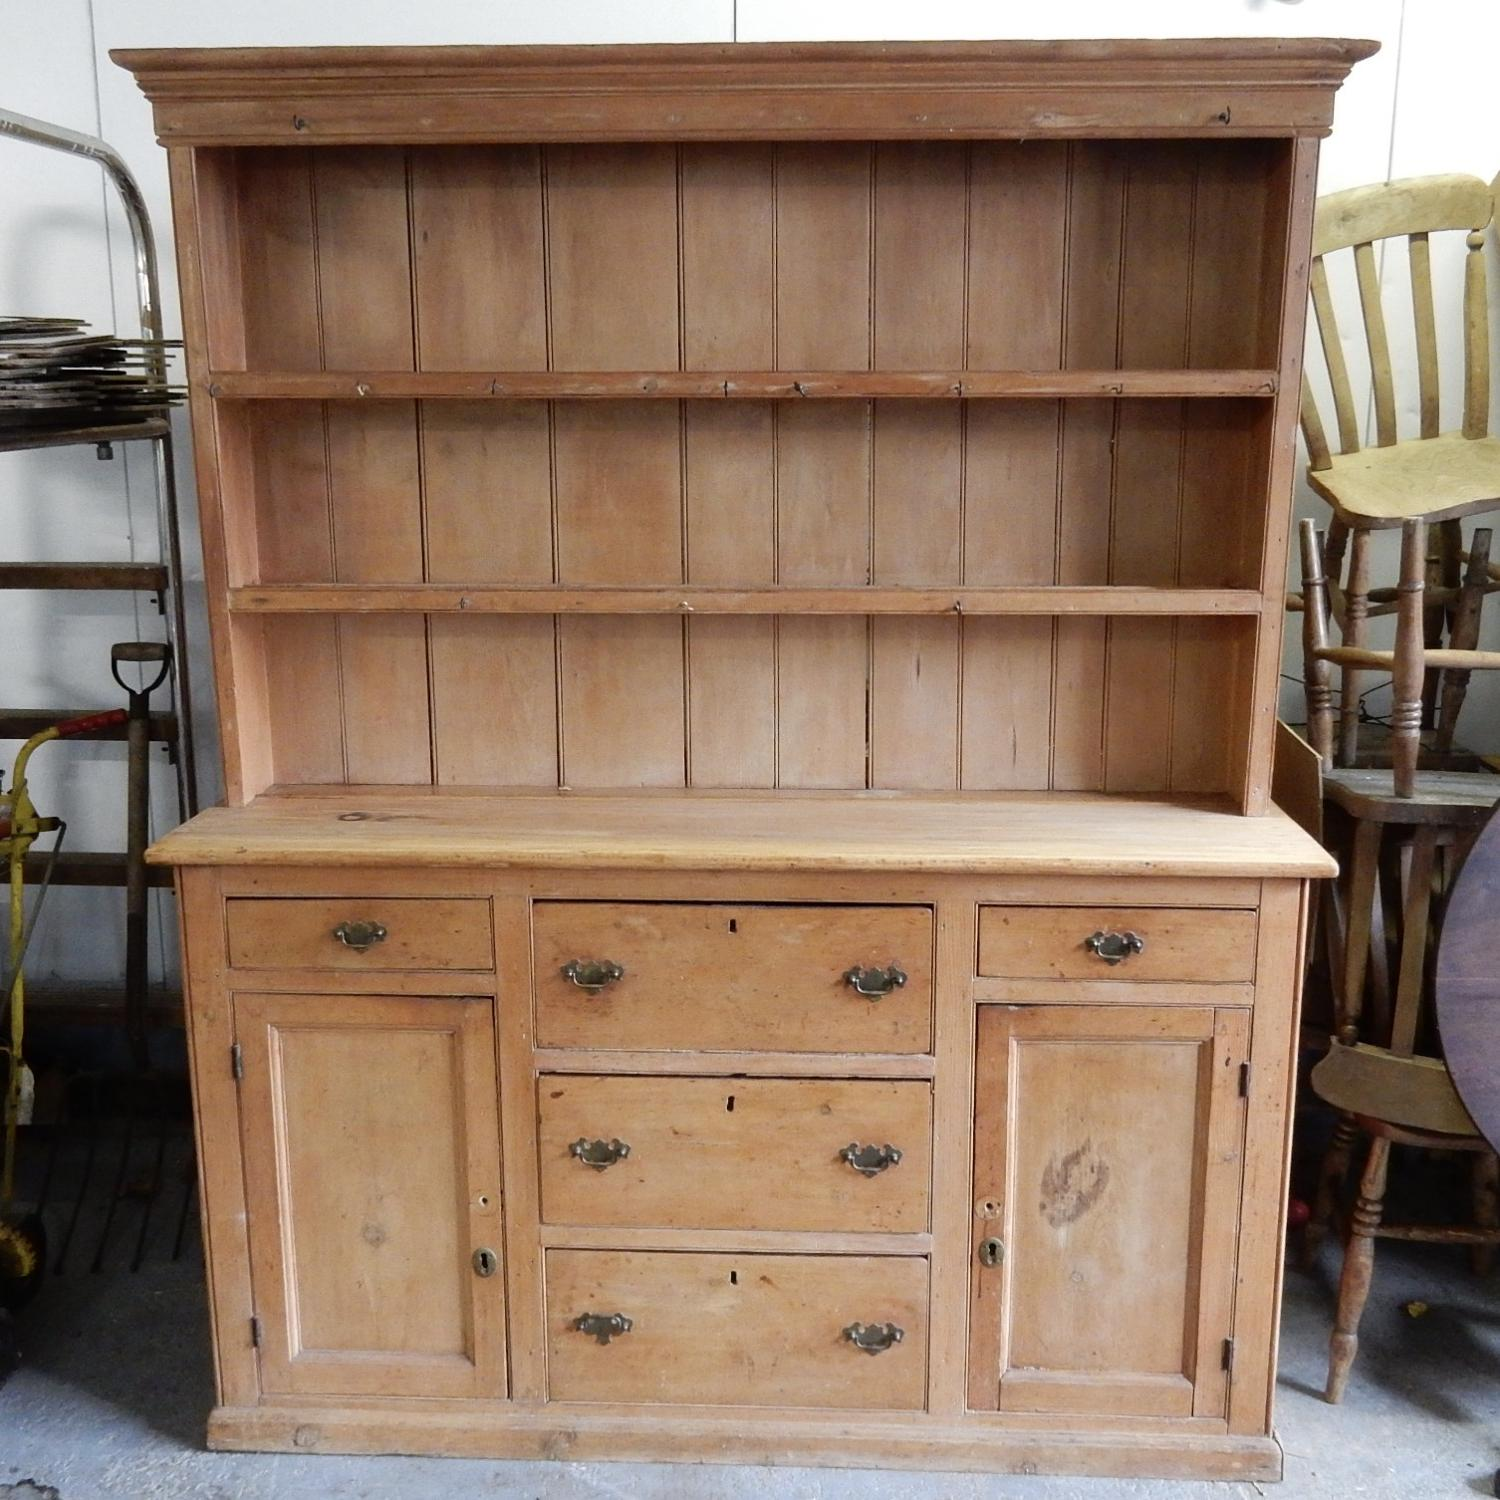 Antique Pine Dresser (for refurbishment)